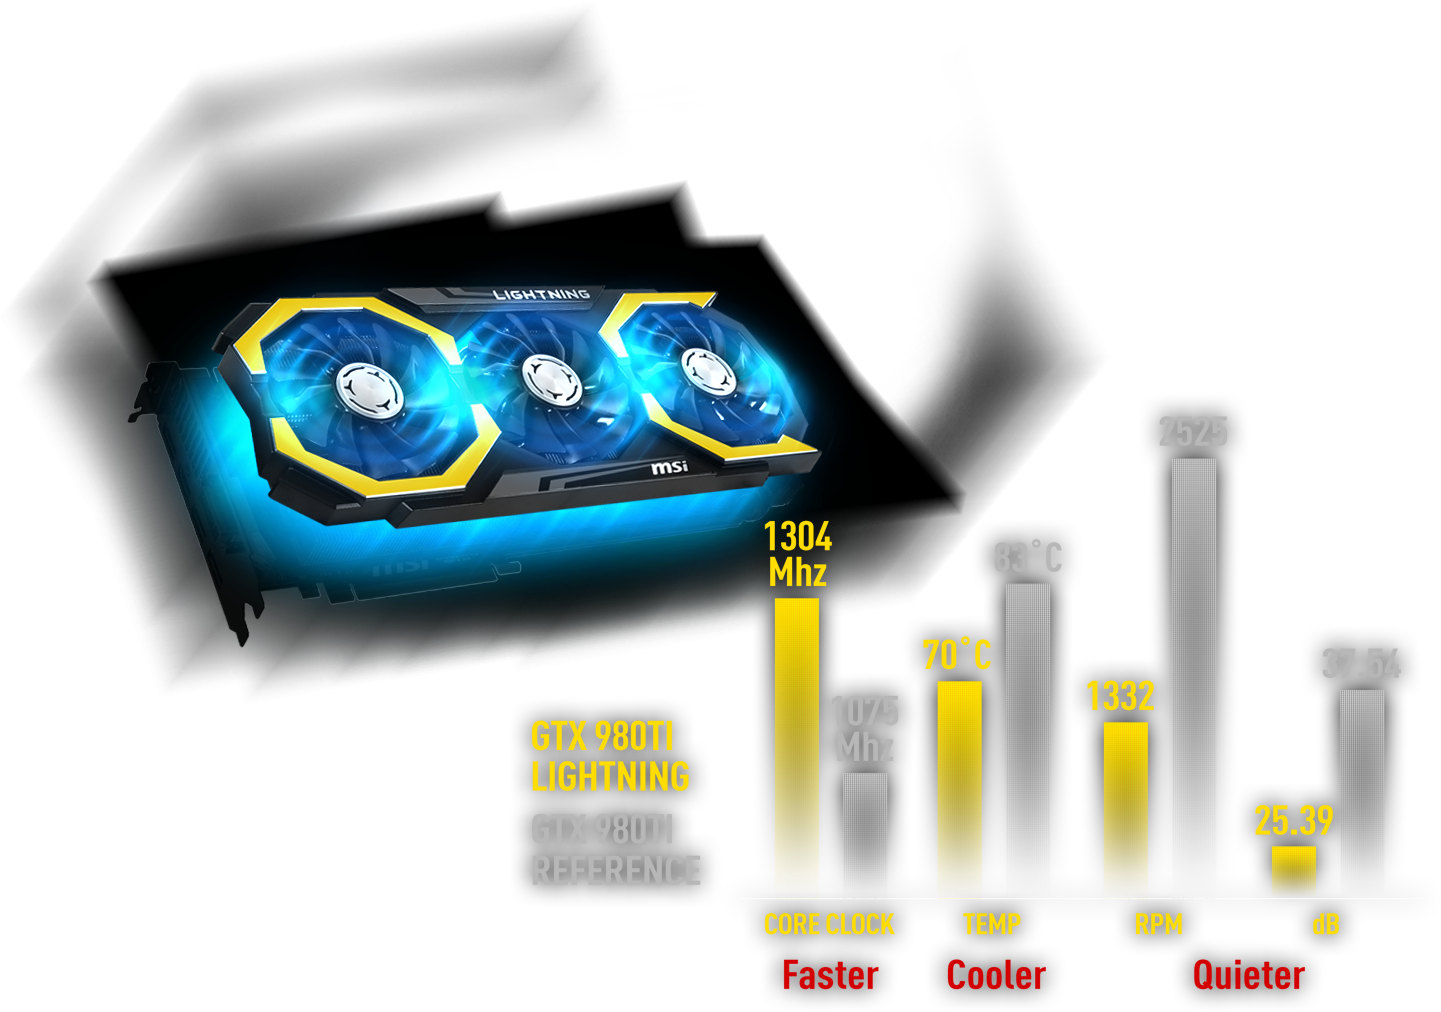 GeForce GTX 980 Ti LIGHTNING LE | Graphics card - The world